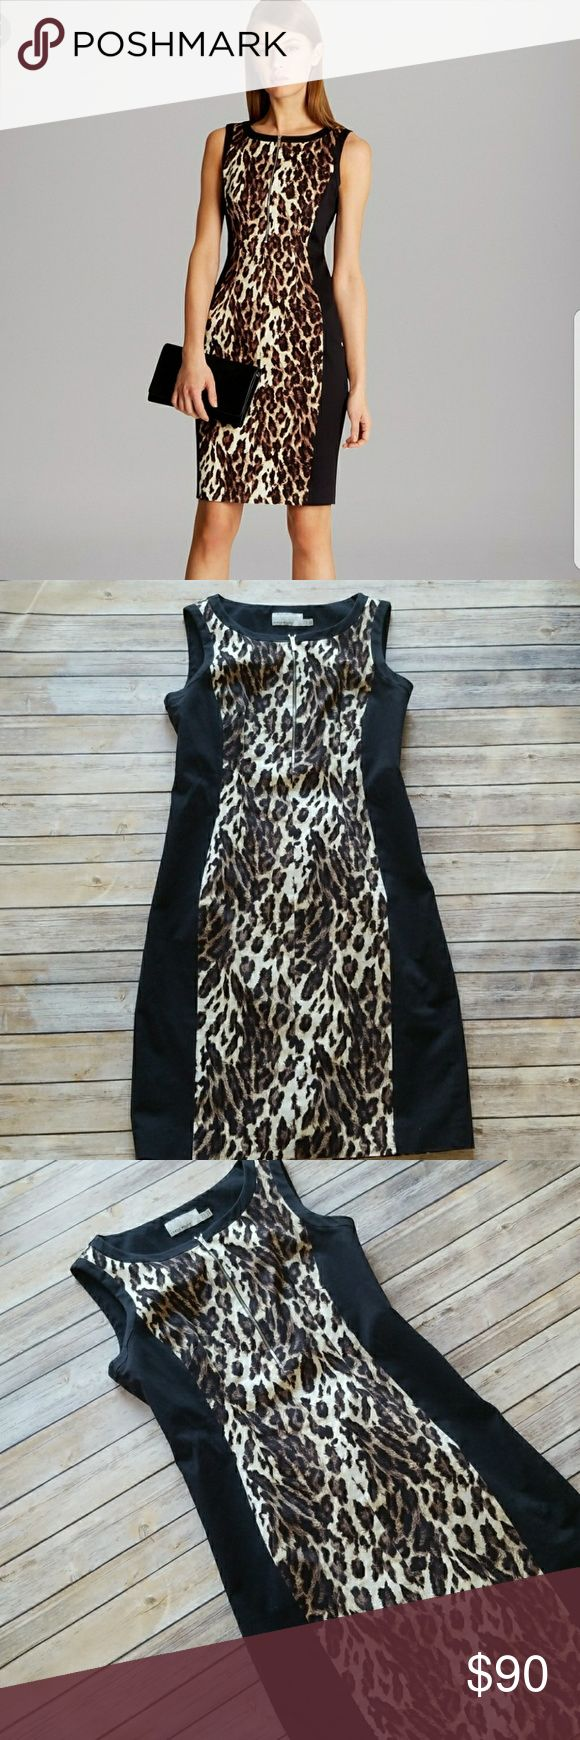 "Karen Millen Leopard Print Shift Dress Karen Millen Leopard Print Shift Dress  *Leopard print with contrast black side panels that provide slimming effect *Rounded neck *Exposed front zip closure *Sleeveless *Excellent pre-owned condition. No rips, holes, stains or pulls *Size 12 *97% Cotton 3% Elastane  Shoulder to bottom: approx. 39 1/2"" Underarm to underarm: approx. 18"" Karen Millen Dresses"